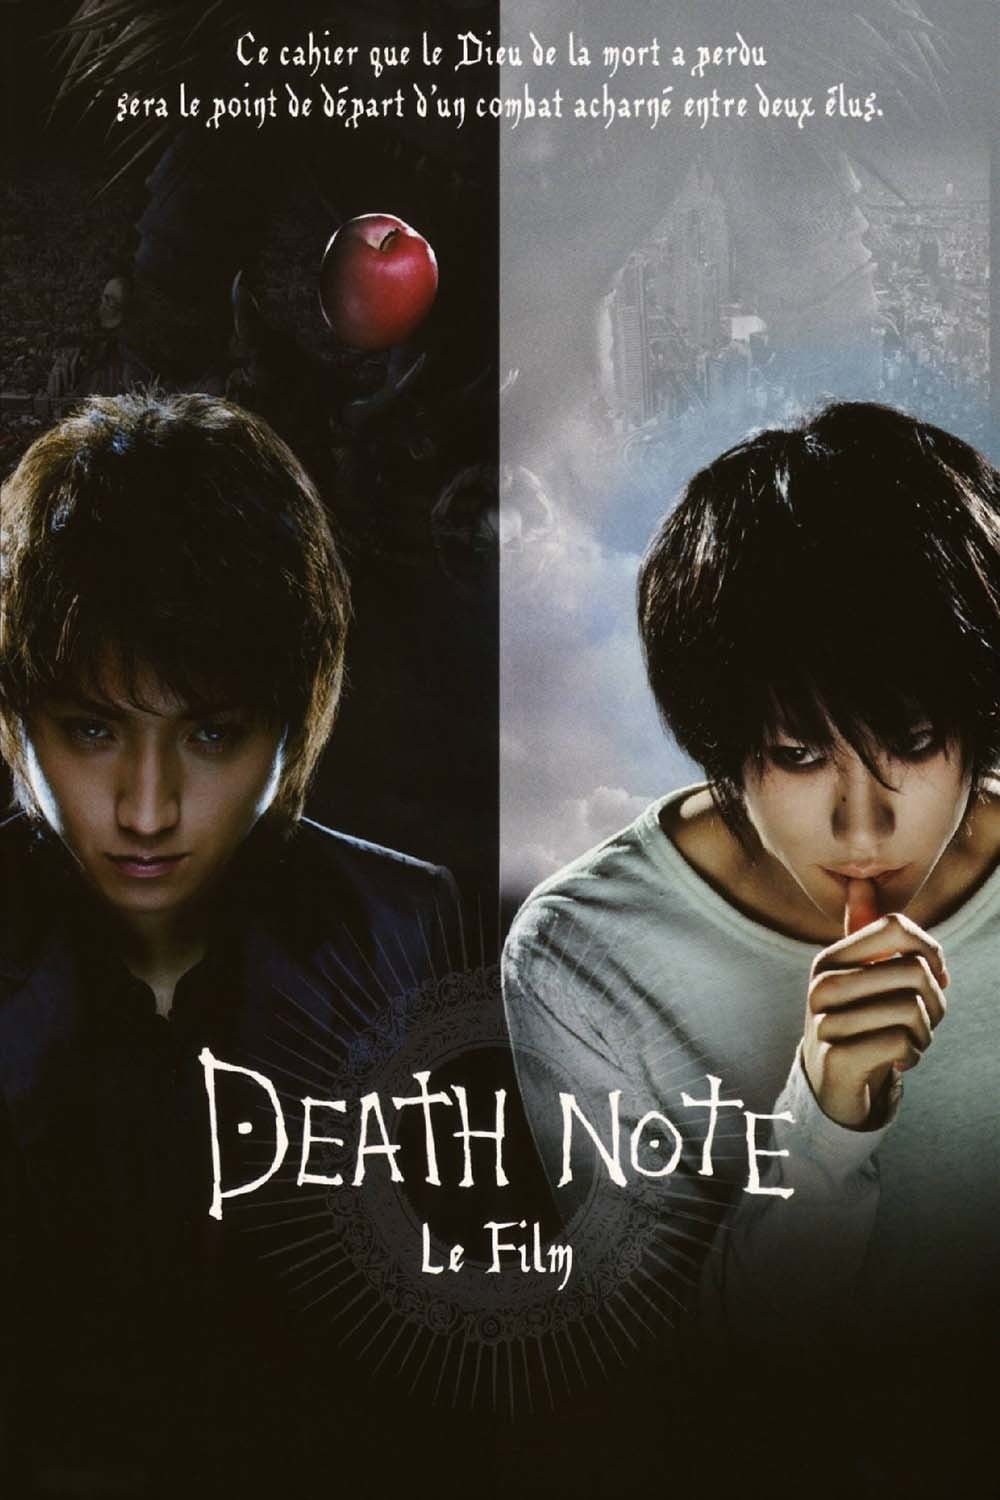 Death Note Le film